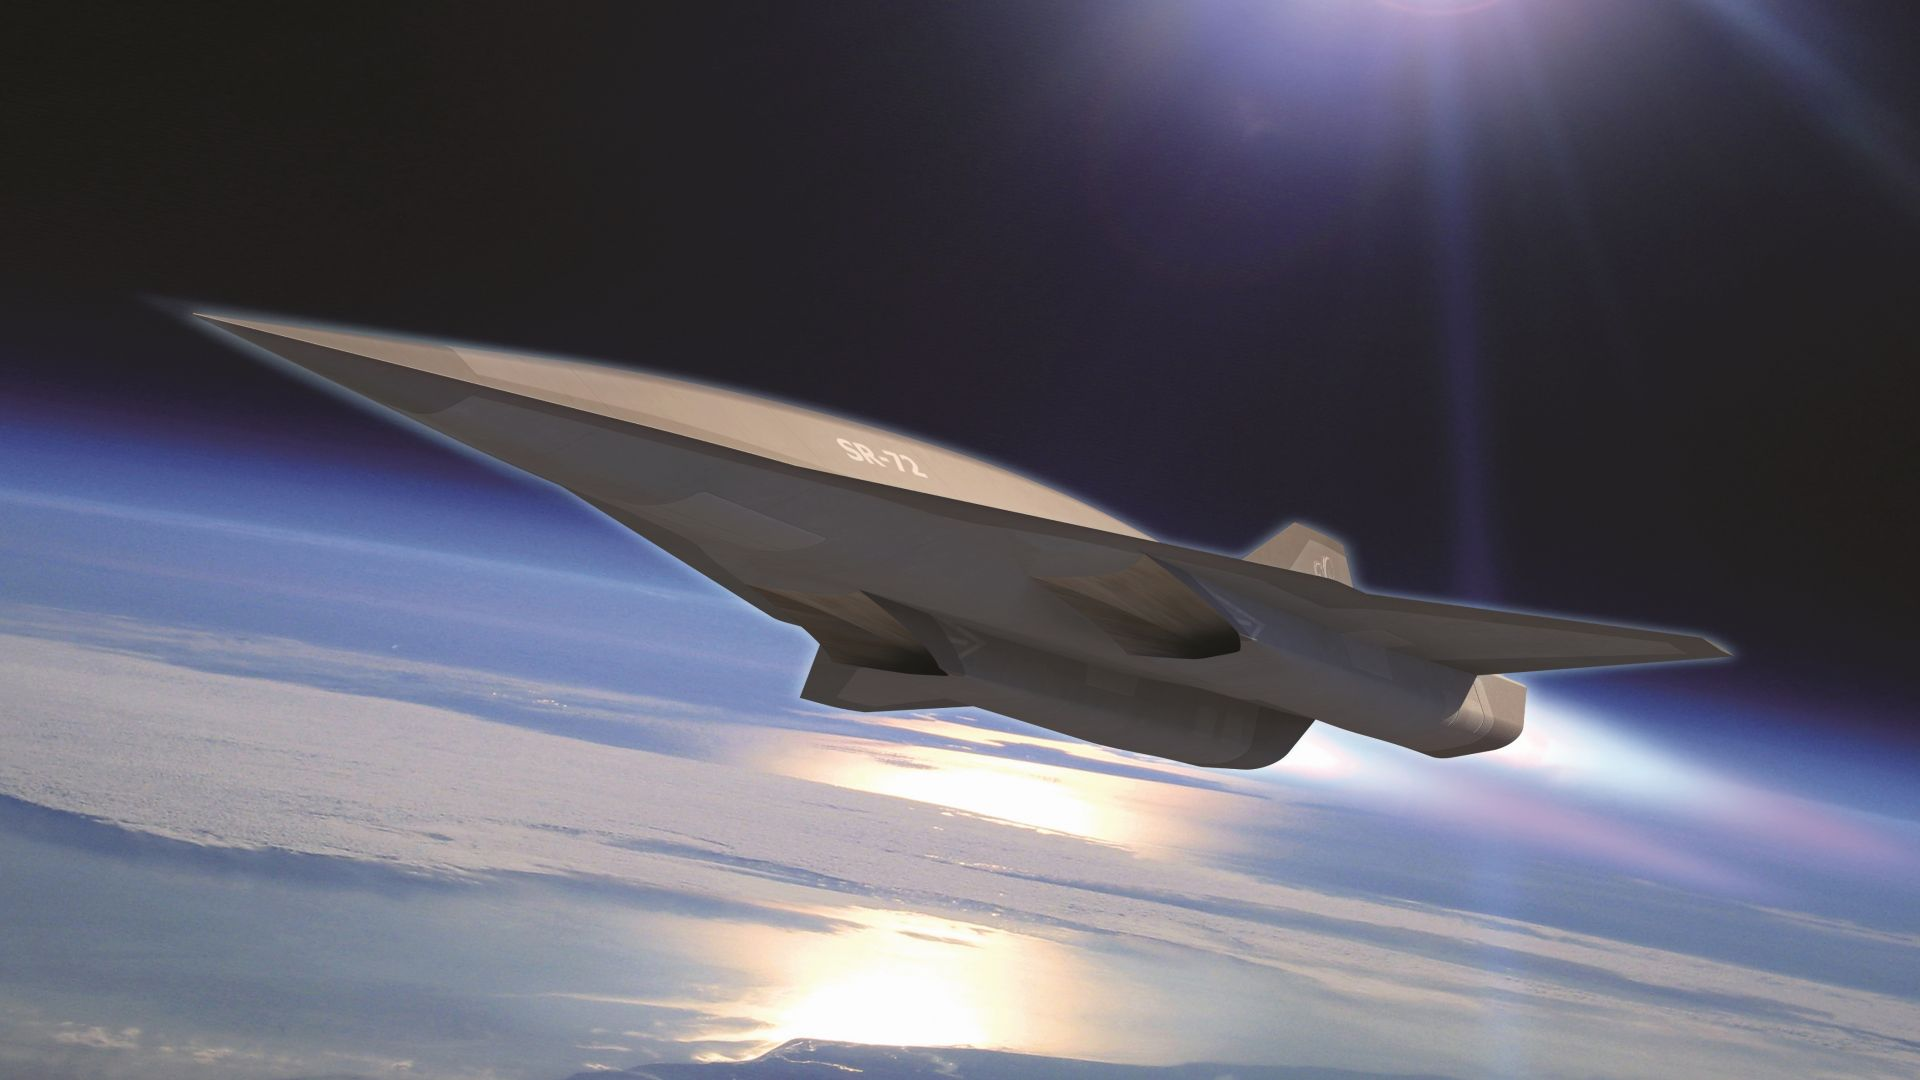 SR-72, Lockheed, Hypersonic Unmanned Reconnaissance Aircraft, Darpa, jet, plane, aircraft, U.S. Air Force (horizontal)